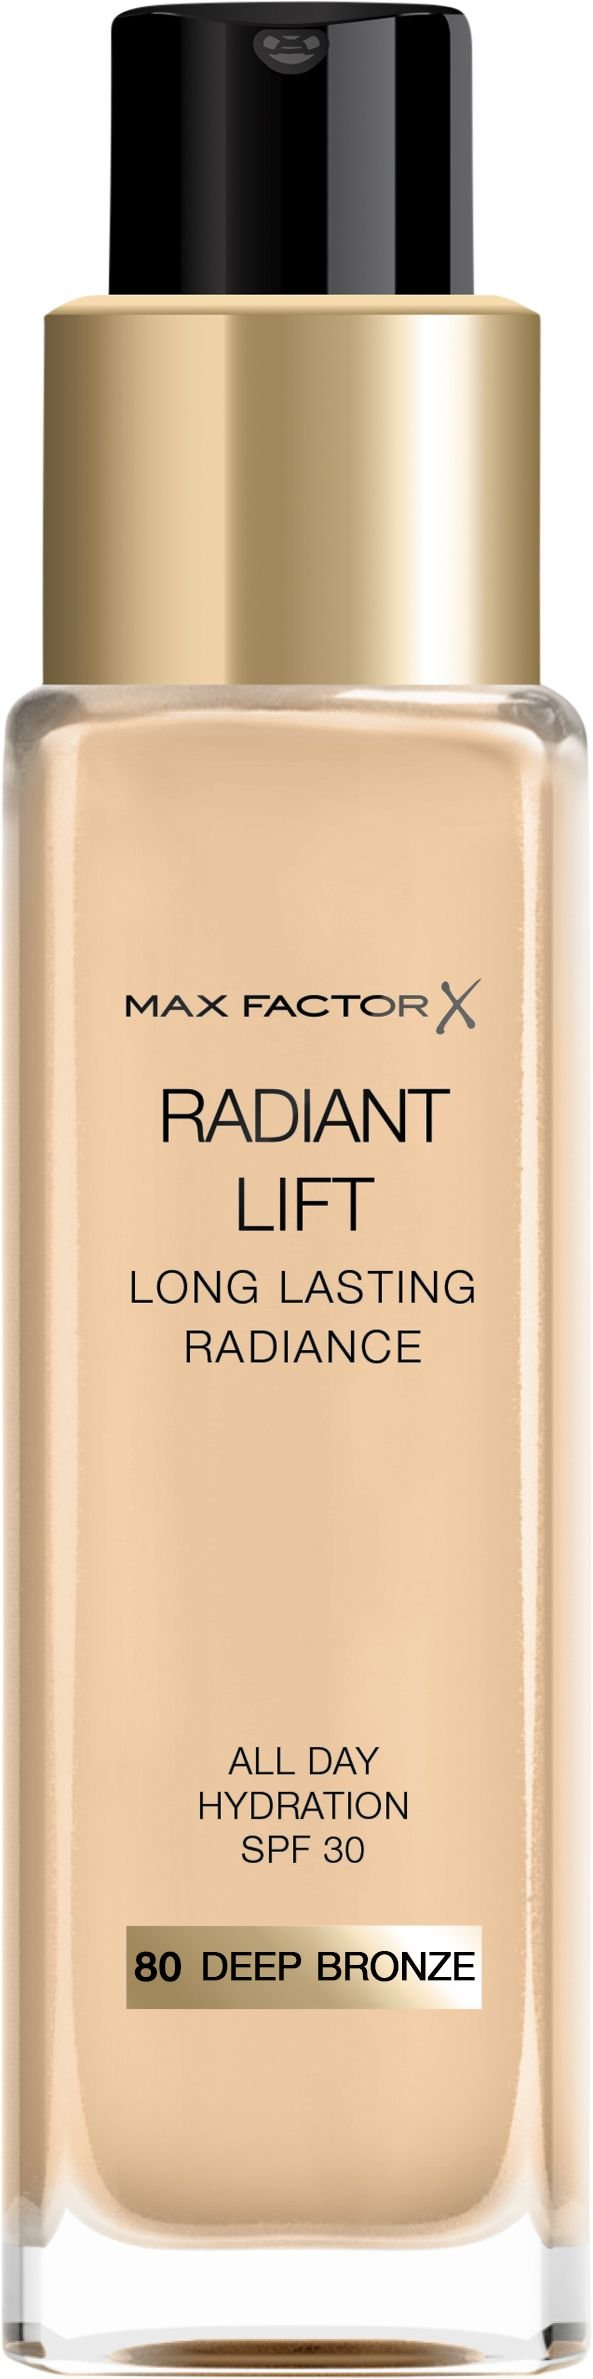 Max Factor Foundation - Radiant Lift Long Lasting Radiance - 080 Deep Brown